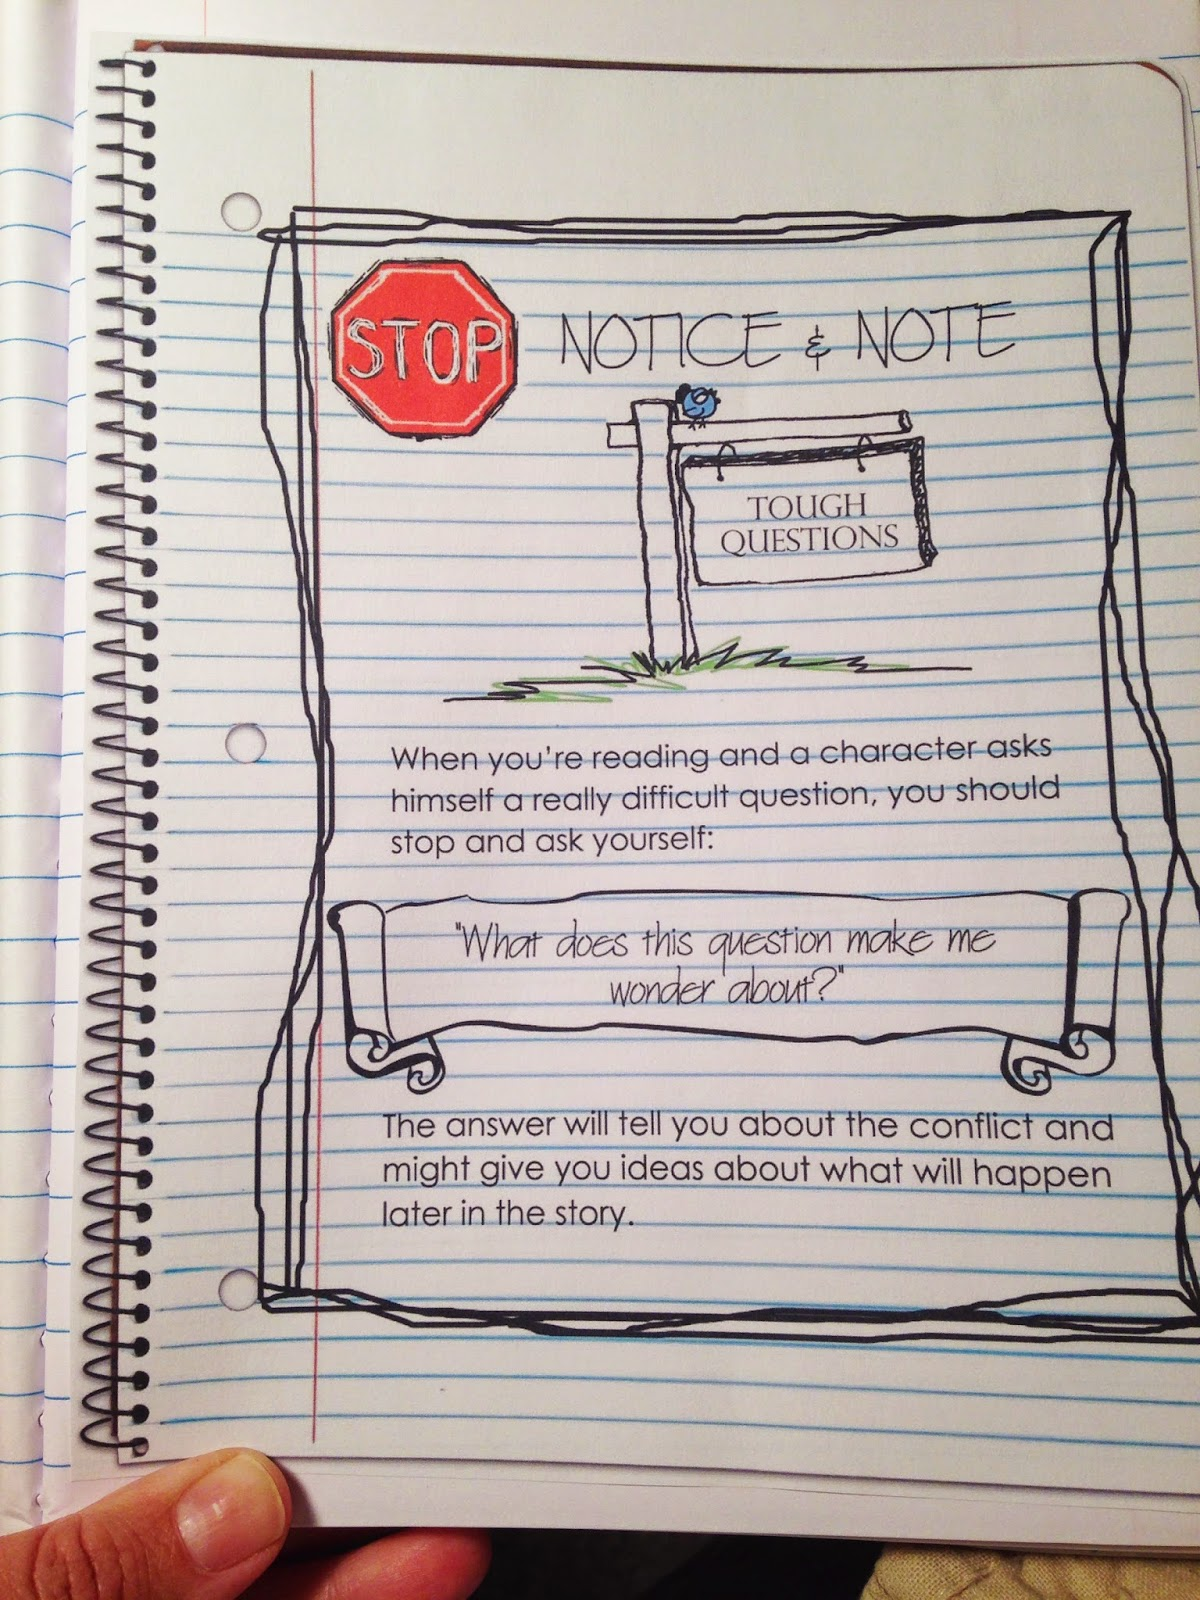 Musings from the Middle School: Notice and Note (Part Two)